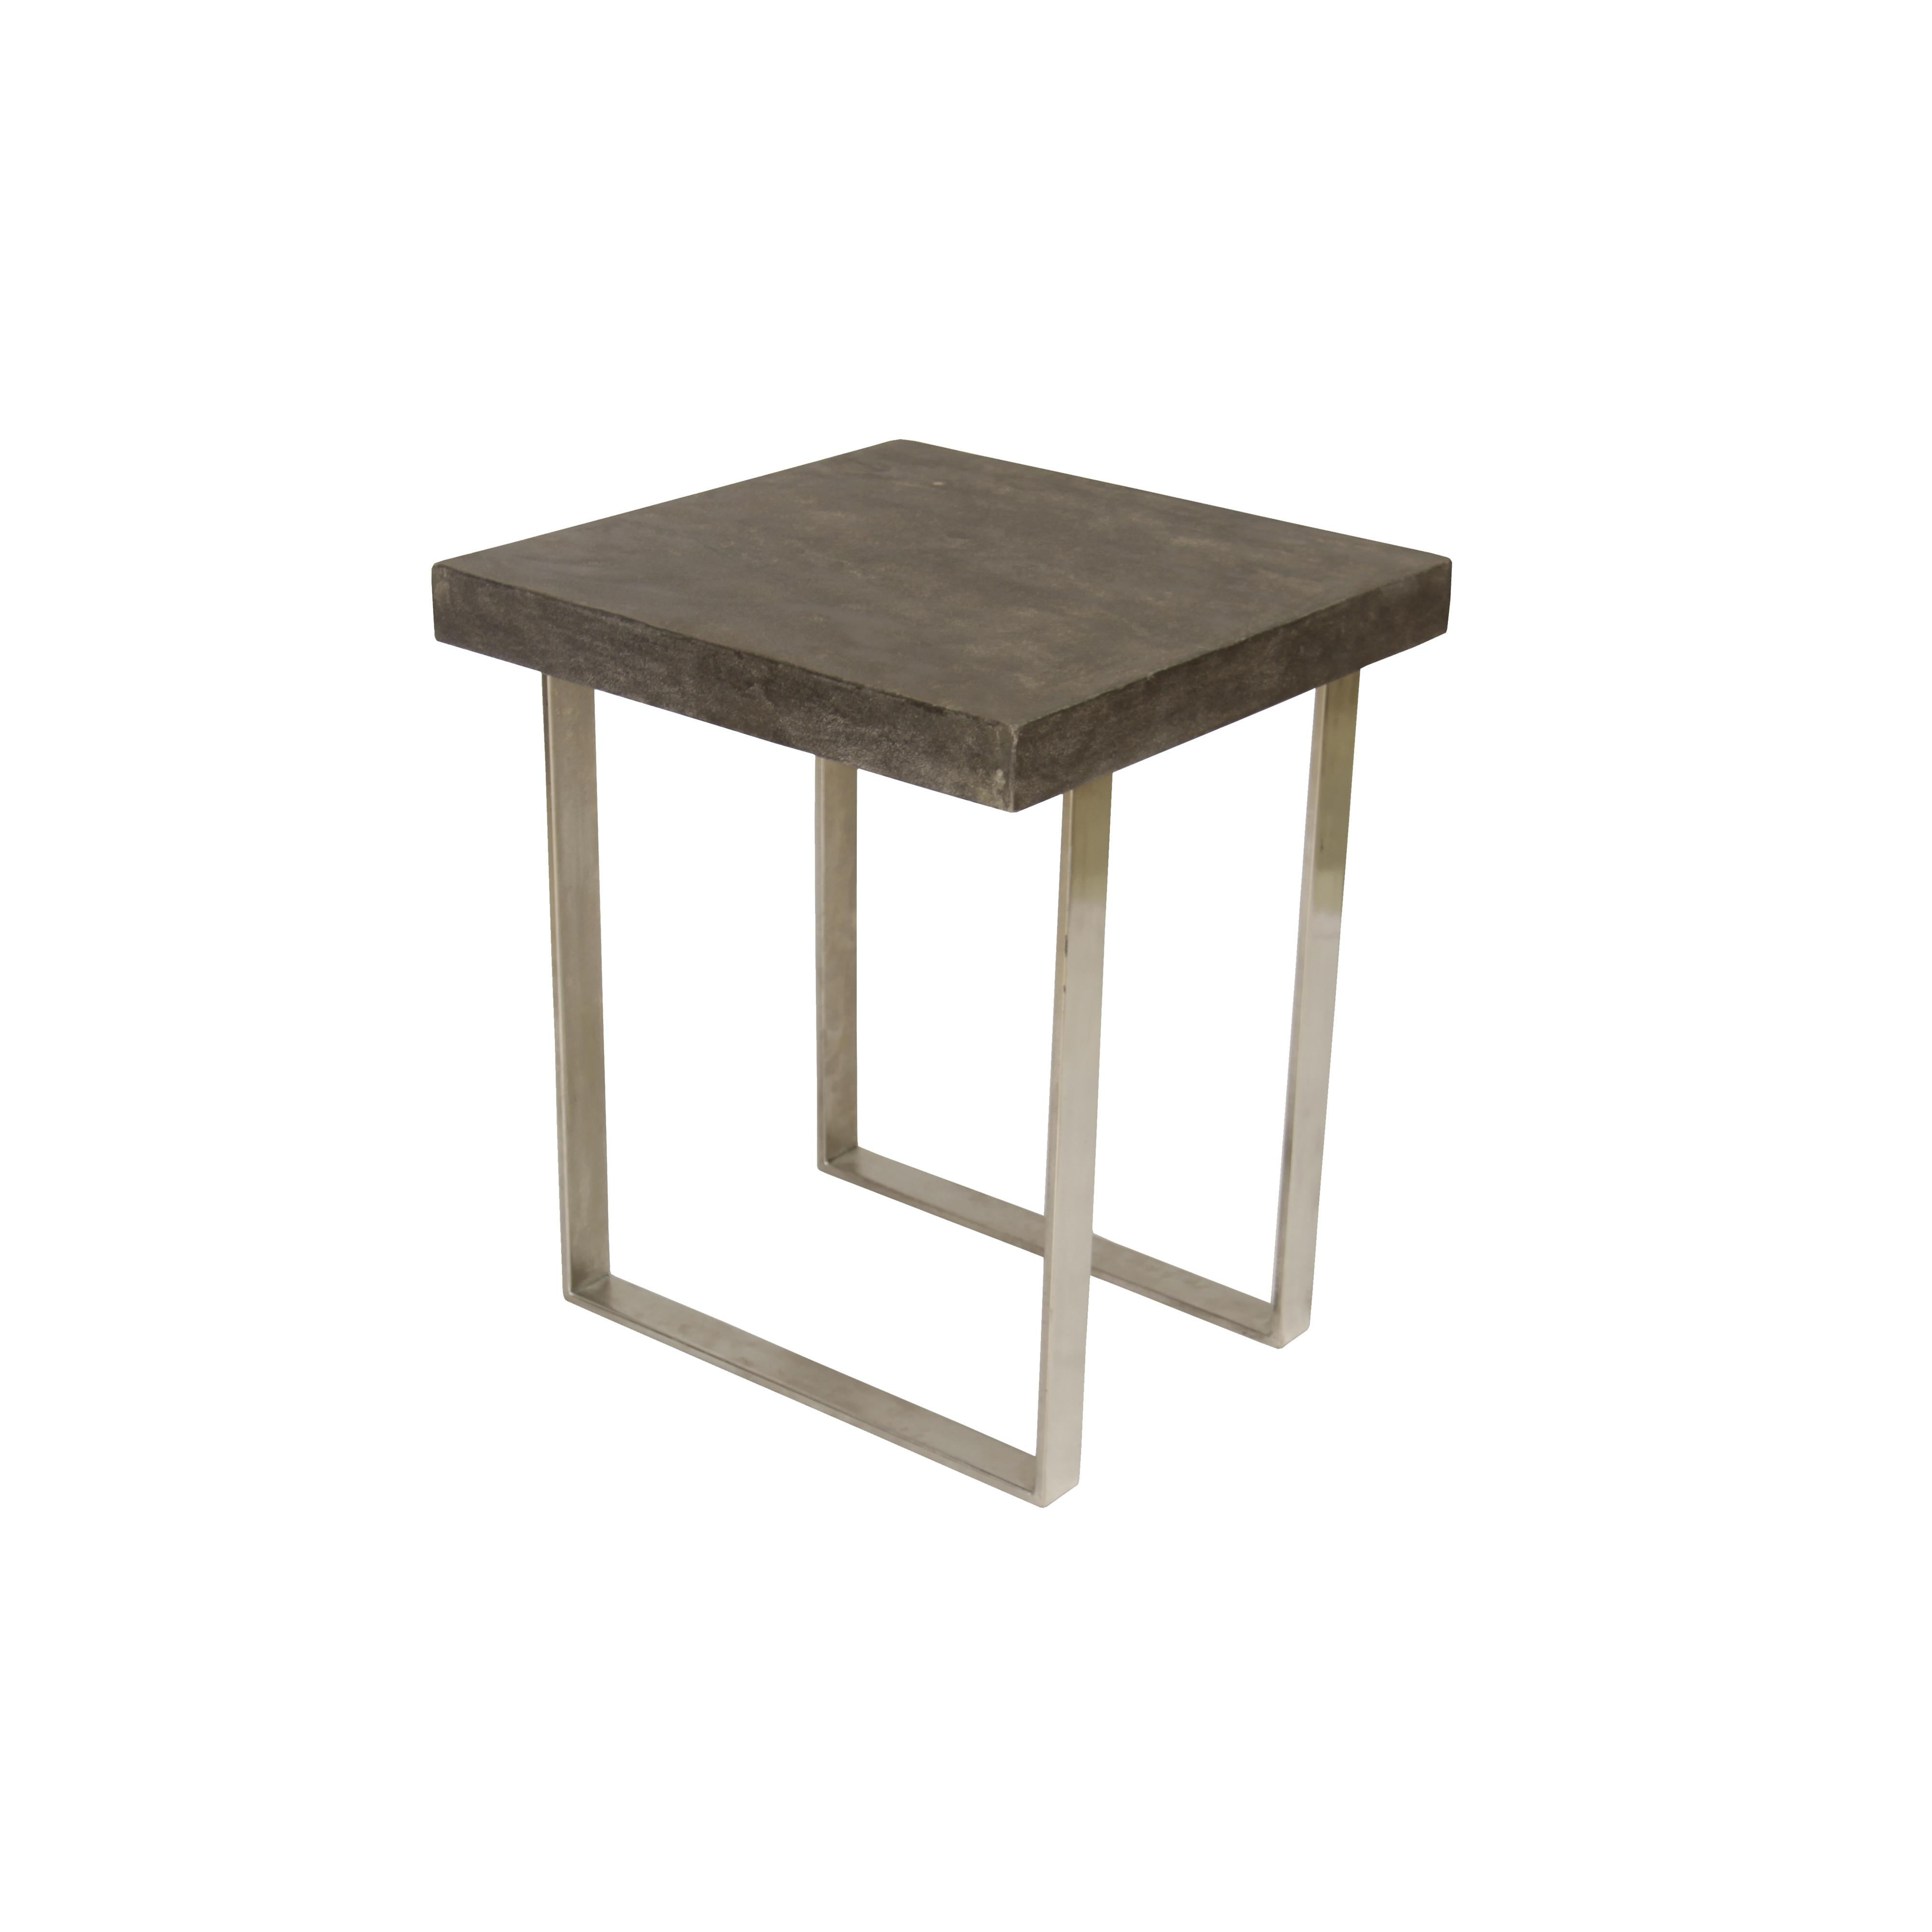 Coast to Coast Imports Jadu Accents Square End Table - Item Number: 63101